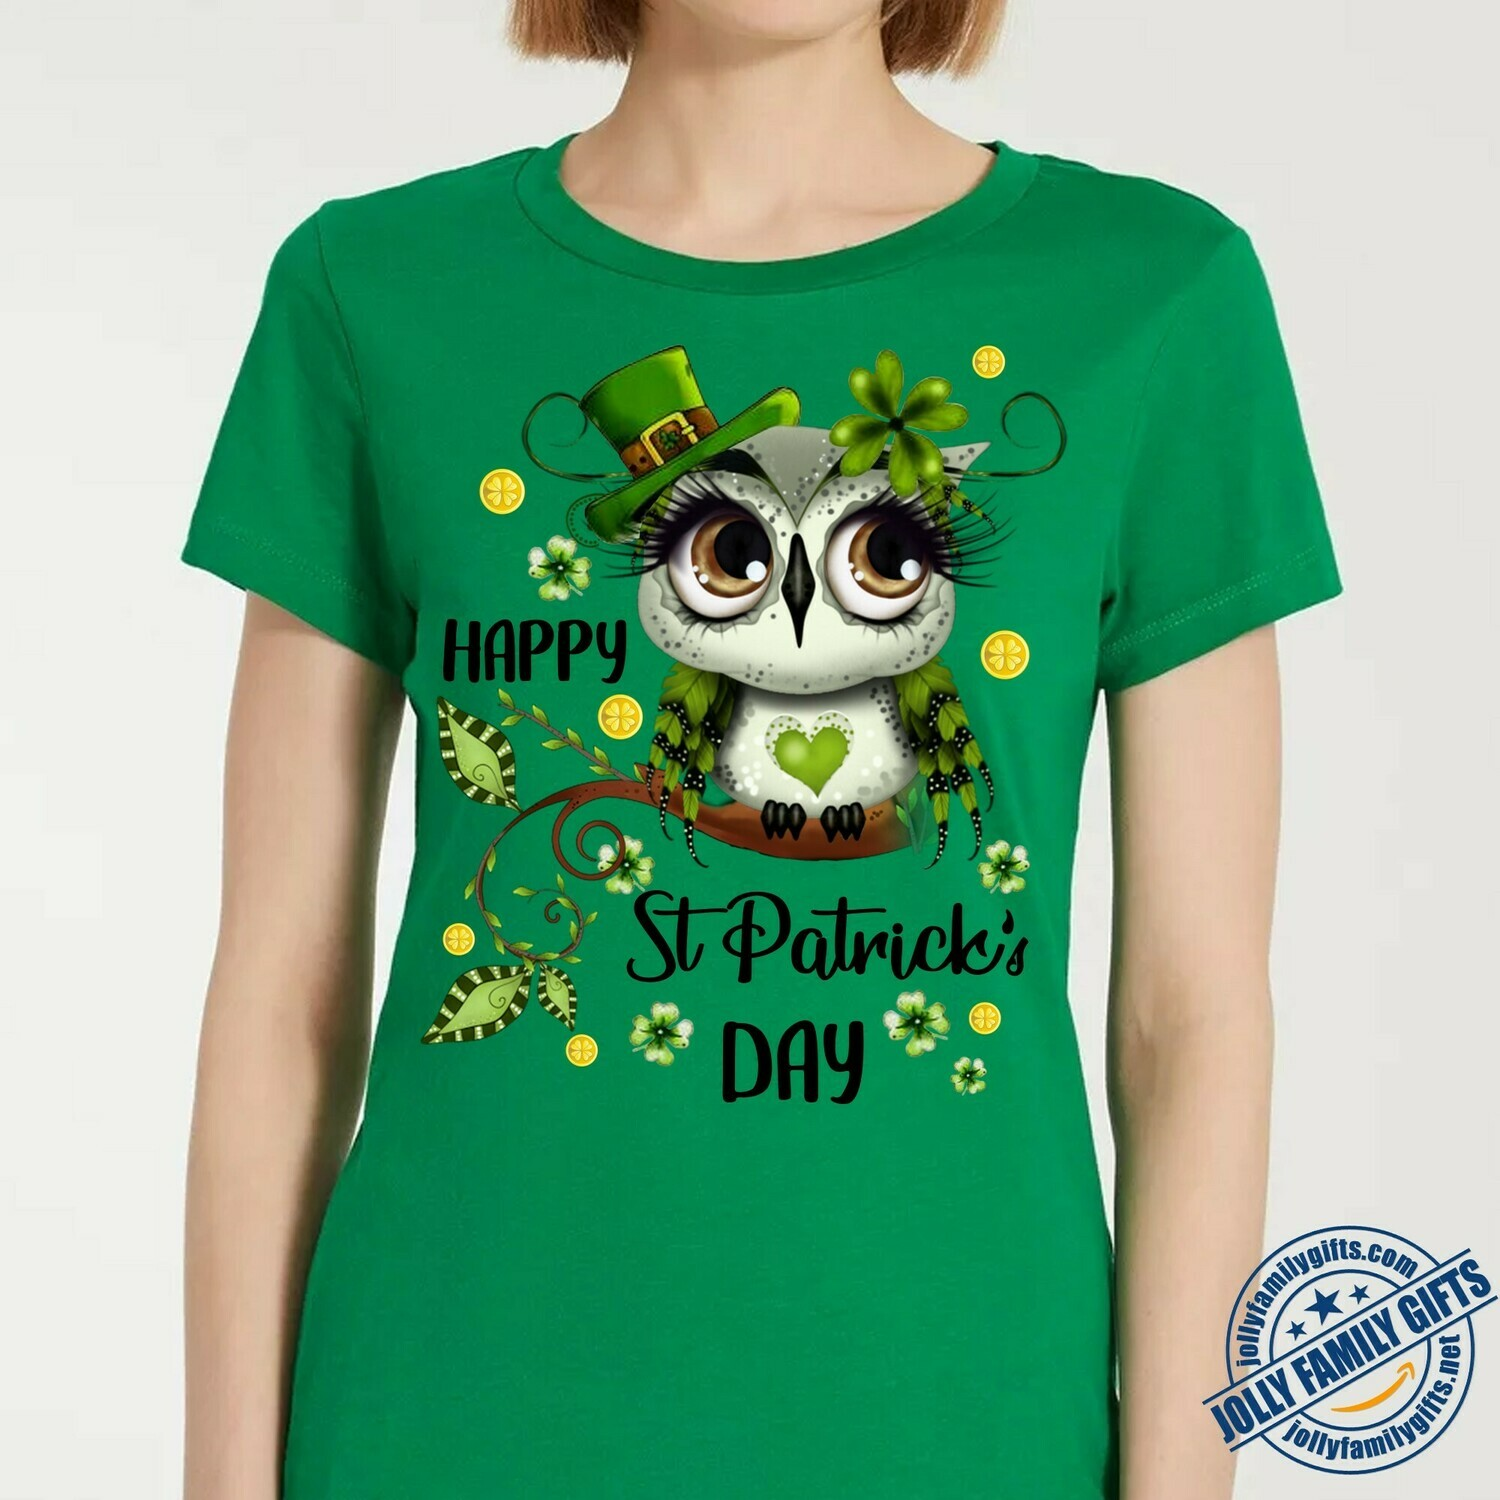 Cute Irish Owl Leprechaun Shamrock Green Four Leaf Clover Lovers Happy St Patrick Day  Unisex T-Shirt Hoodie Sweatshirt Sweater Plus Size for Ladies Women Men Kids Youth Gifts Tee Jolly Family Gifts